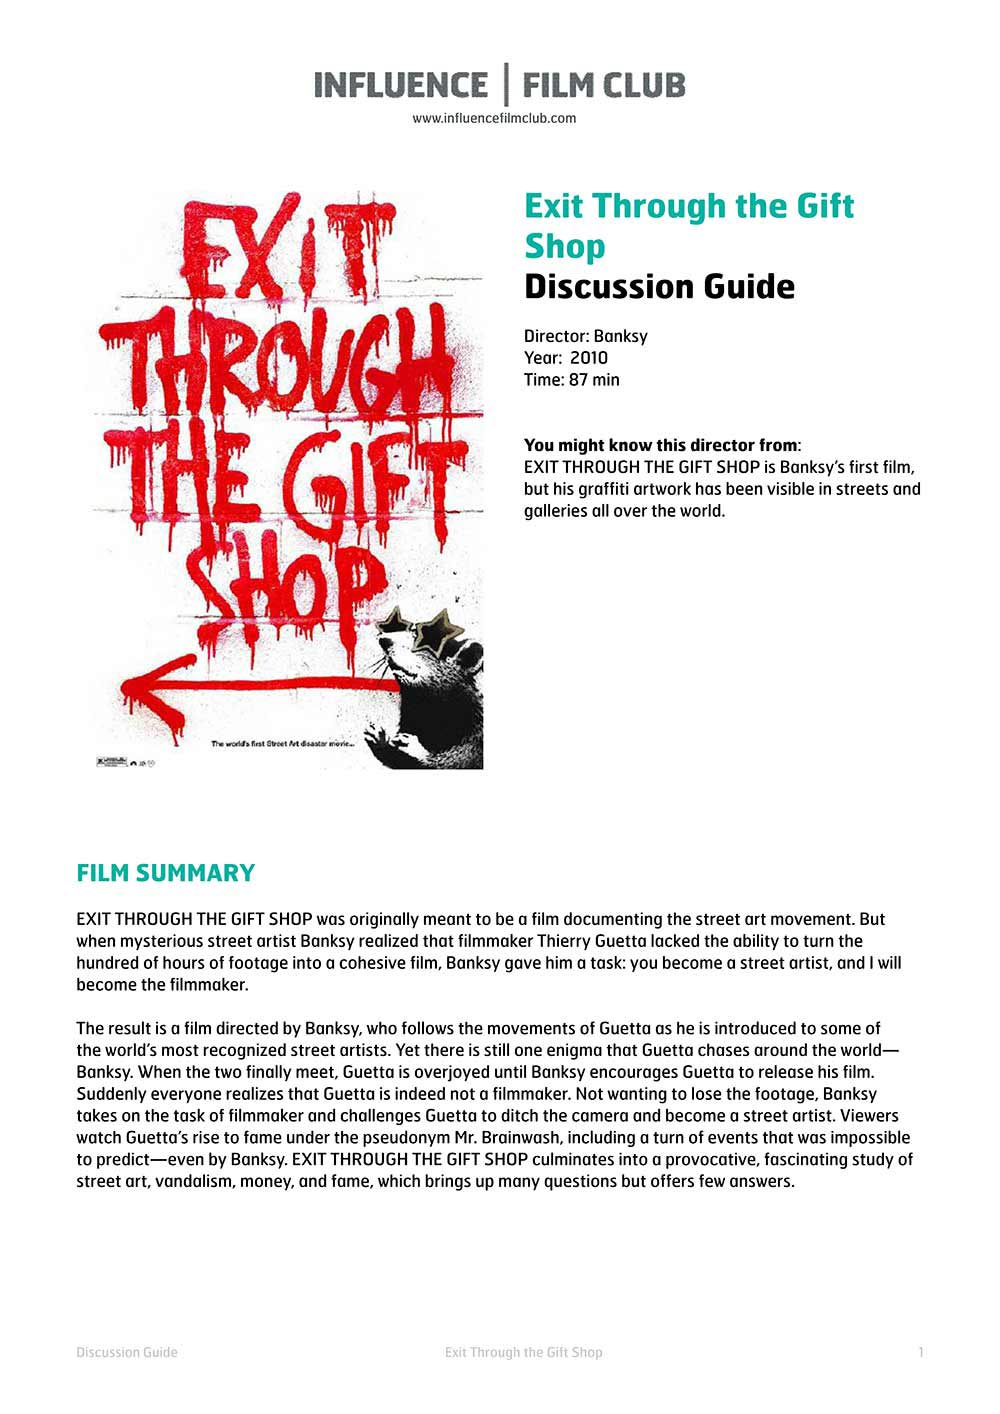 Exit Through the Gift Shop | Influence Film Club